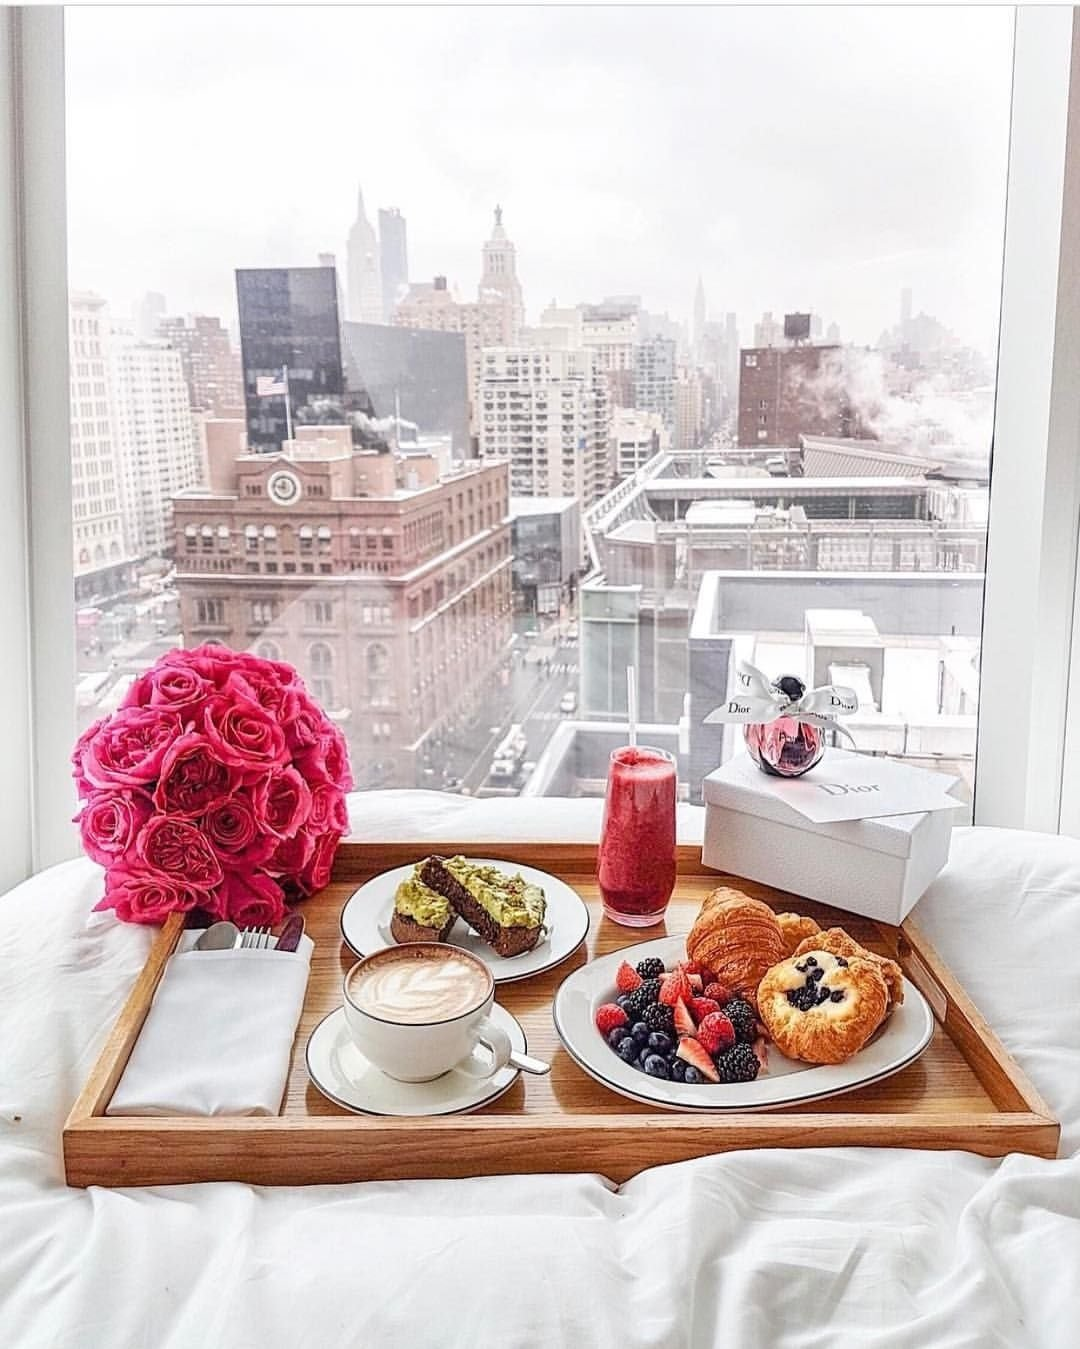 10 Gorgeous Romantic Breakfast In Bed Ideas see this instagram photofashiongoalsz e280a2 21 8k likes breakfast 2020